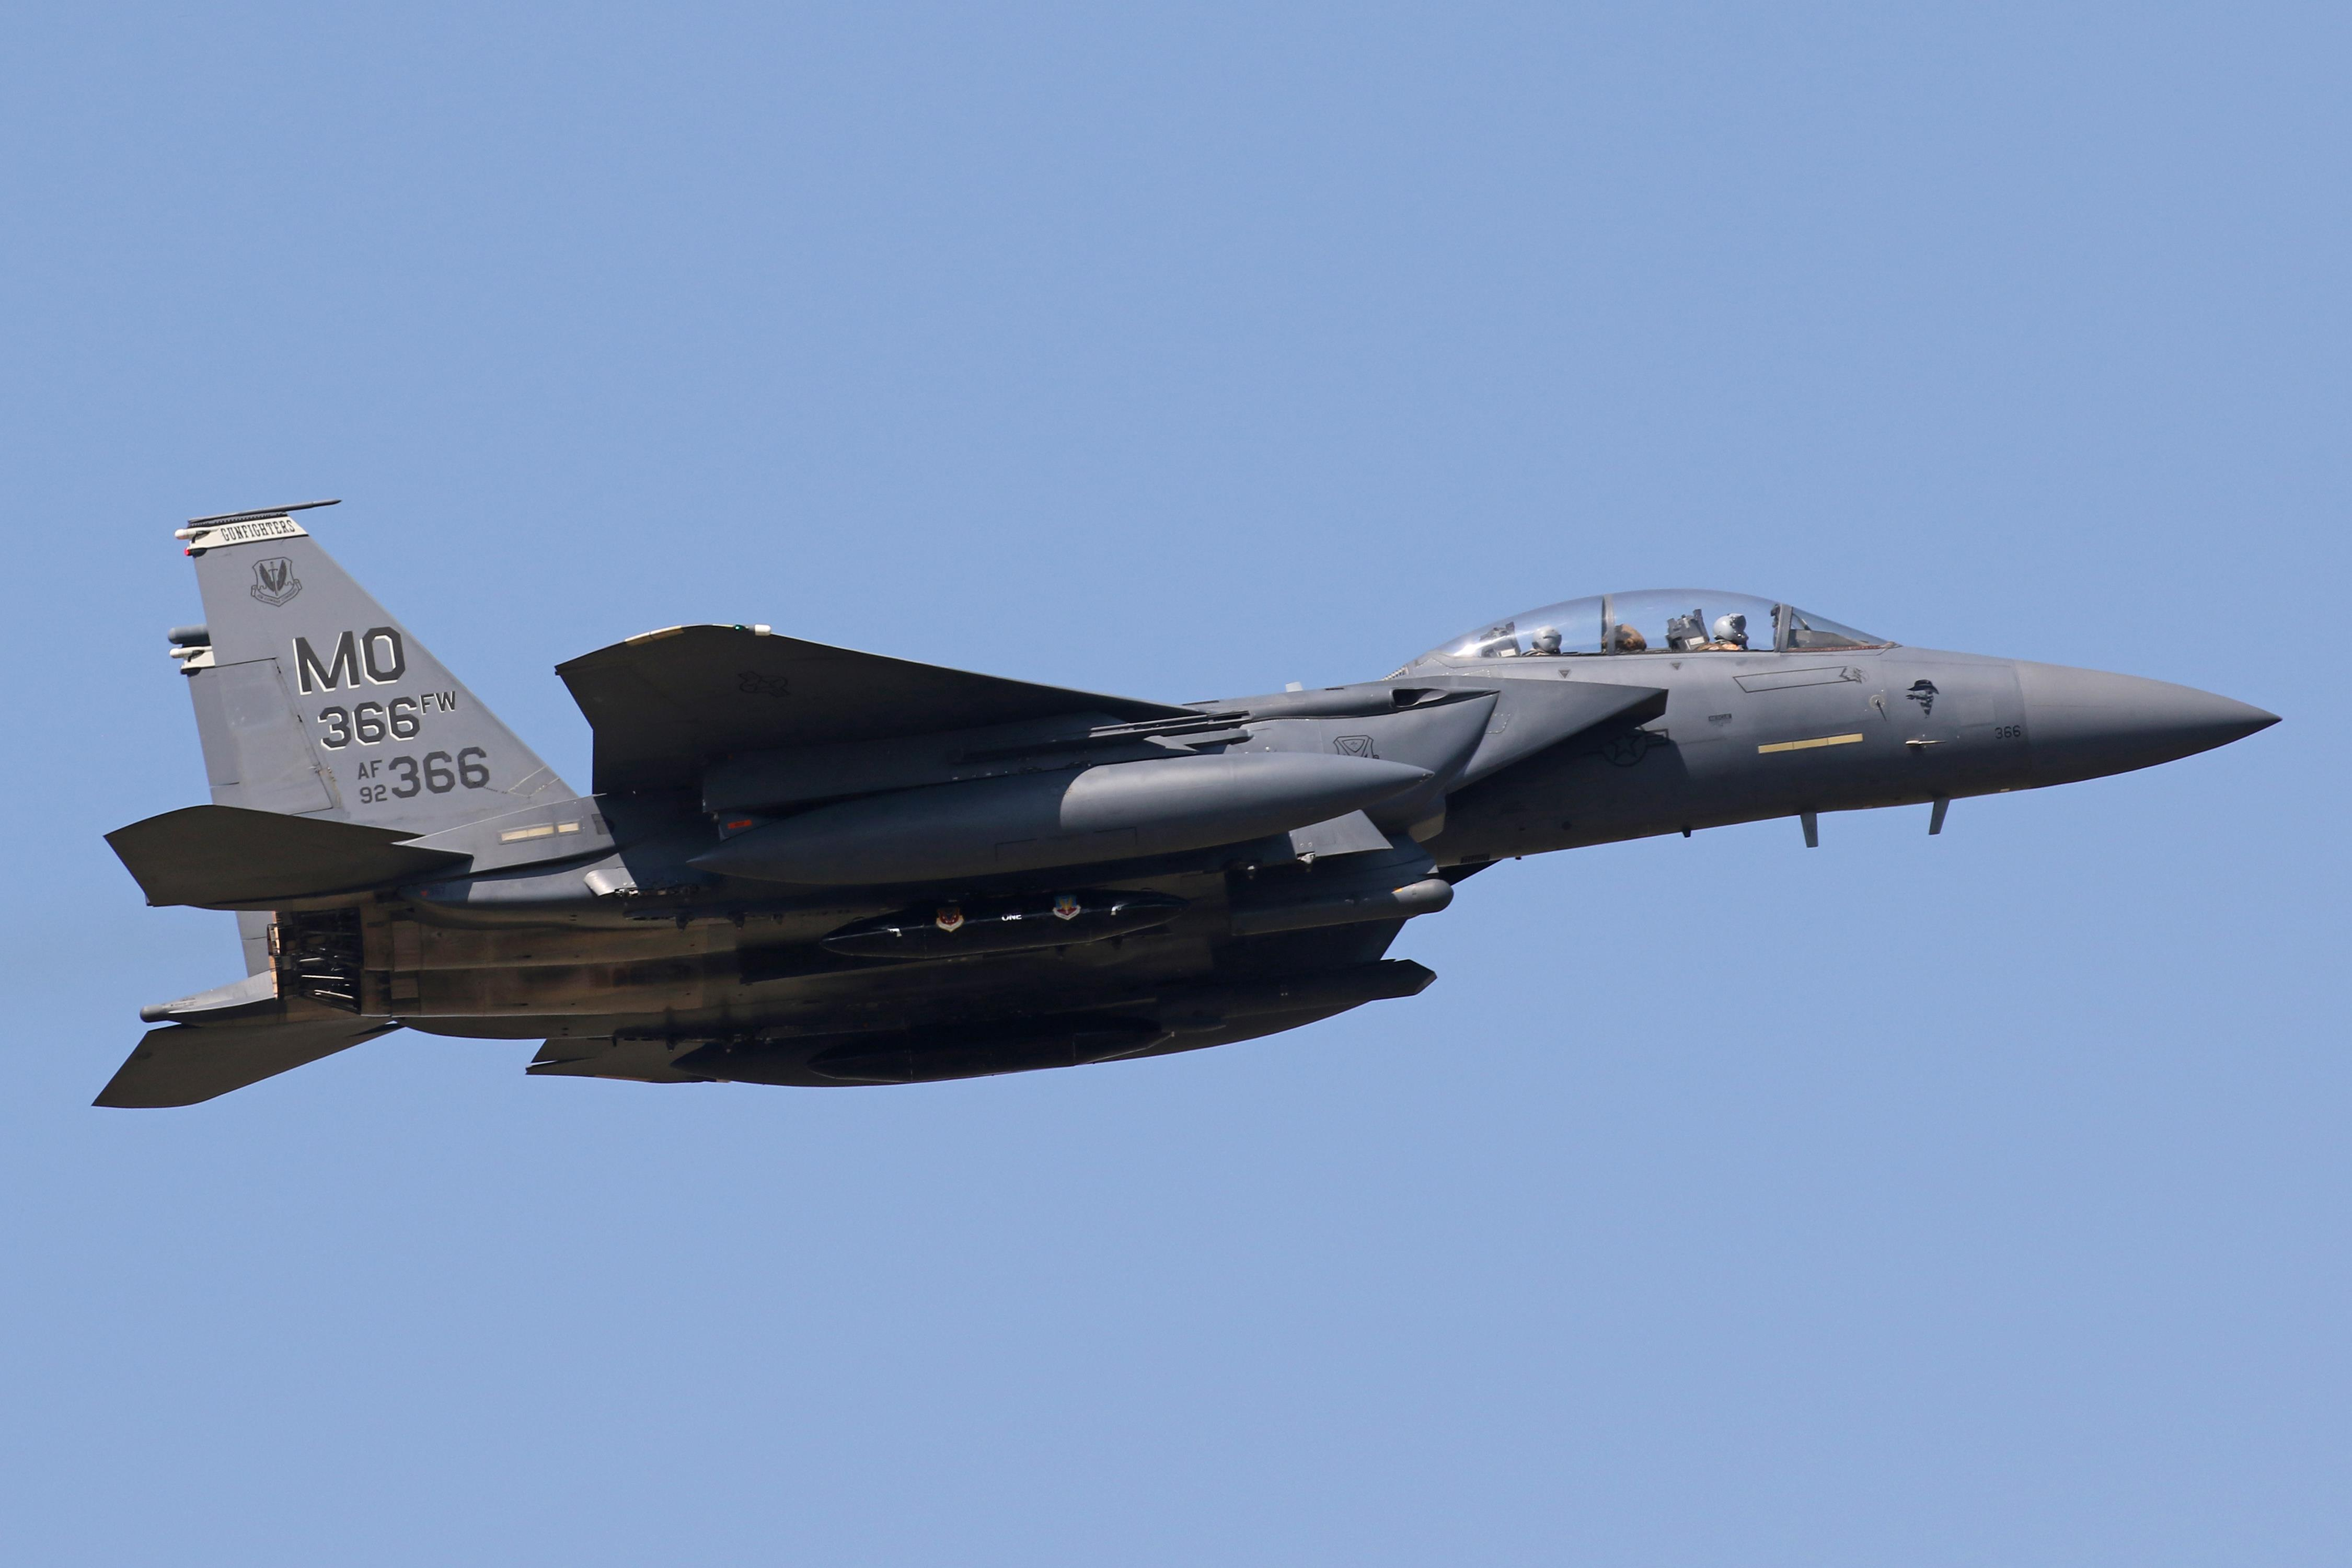 F-15E Bold Tigers from 391st FS (366 FW) Return to USA via RAF Lakenheath, after a six month deployment in the Middle East